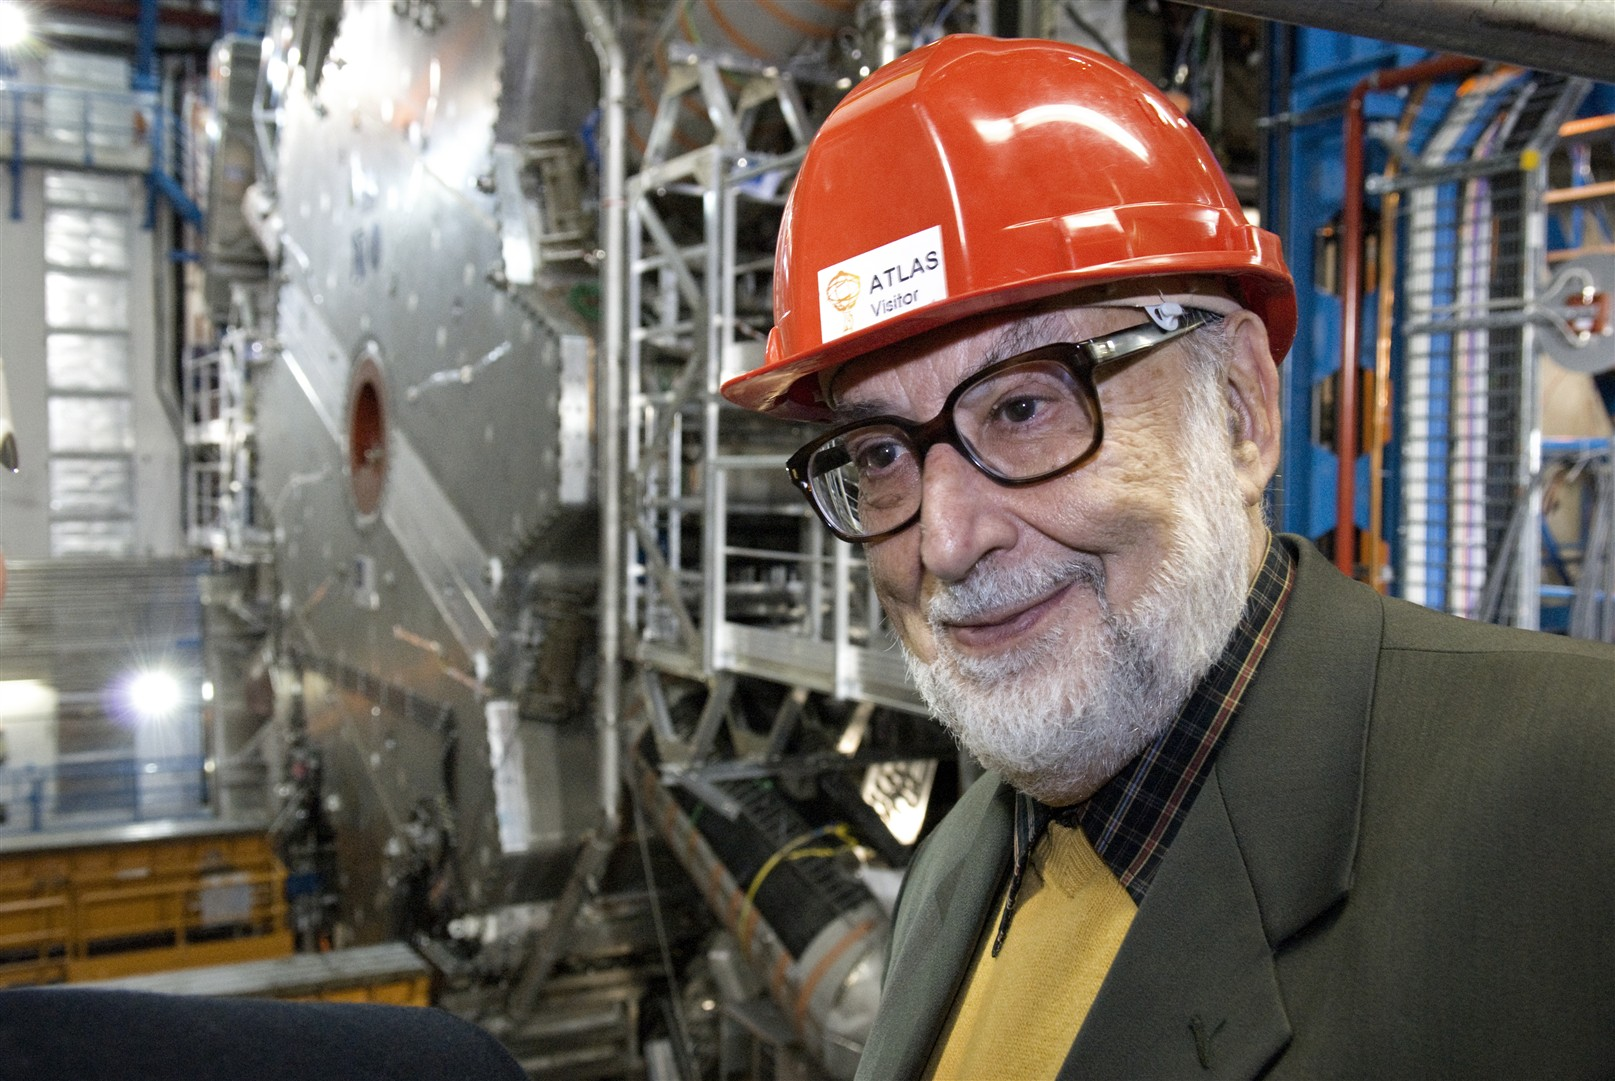 Professeur François Englert, High Energy and Particle Physics Prize by the European Physical Society 1997 (with R. Brout and P.W. Higgs) and Wolf Prize in Physics 2004, visits ATLAS cavern.